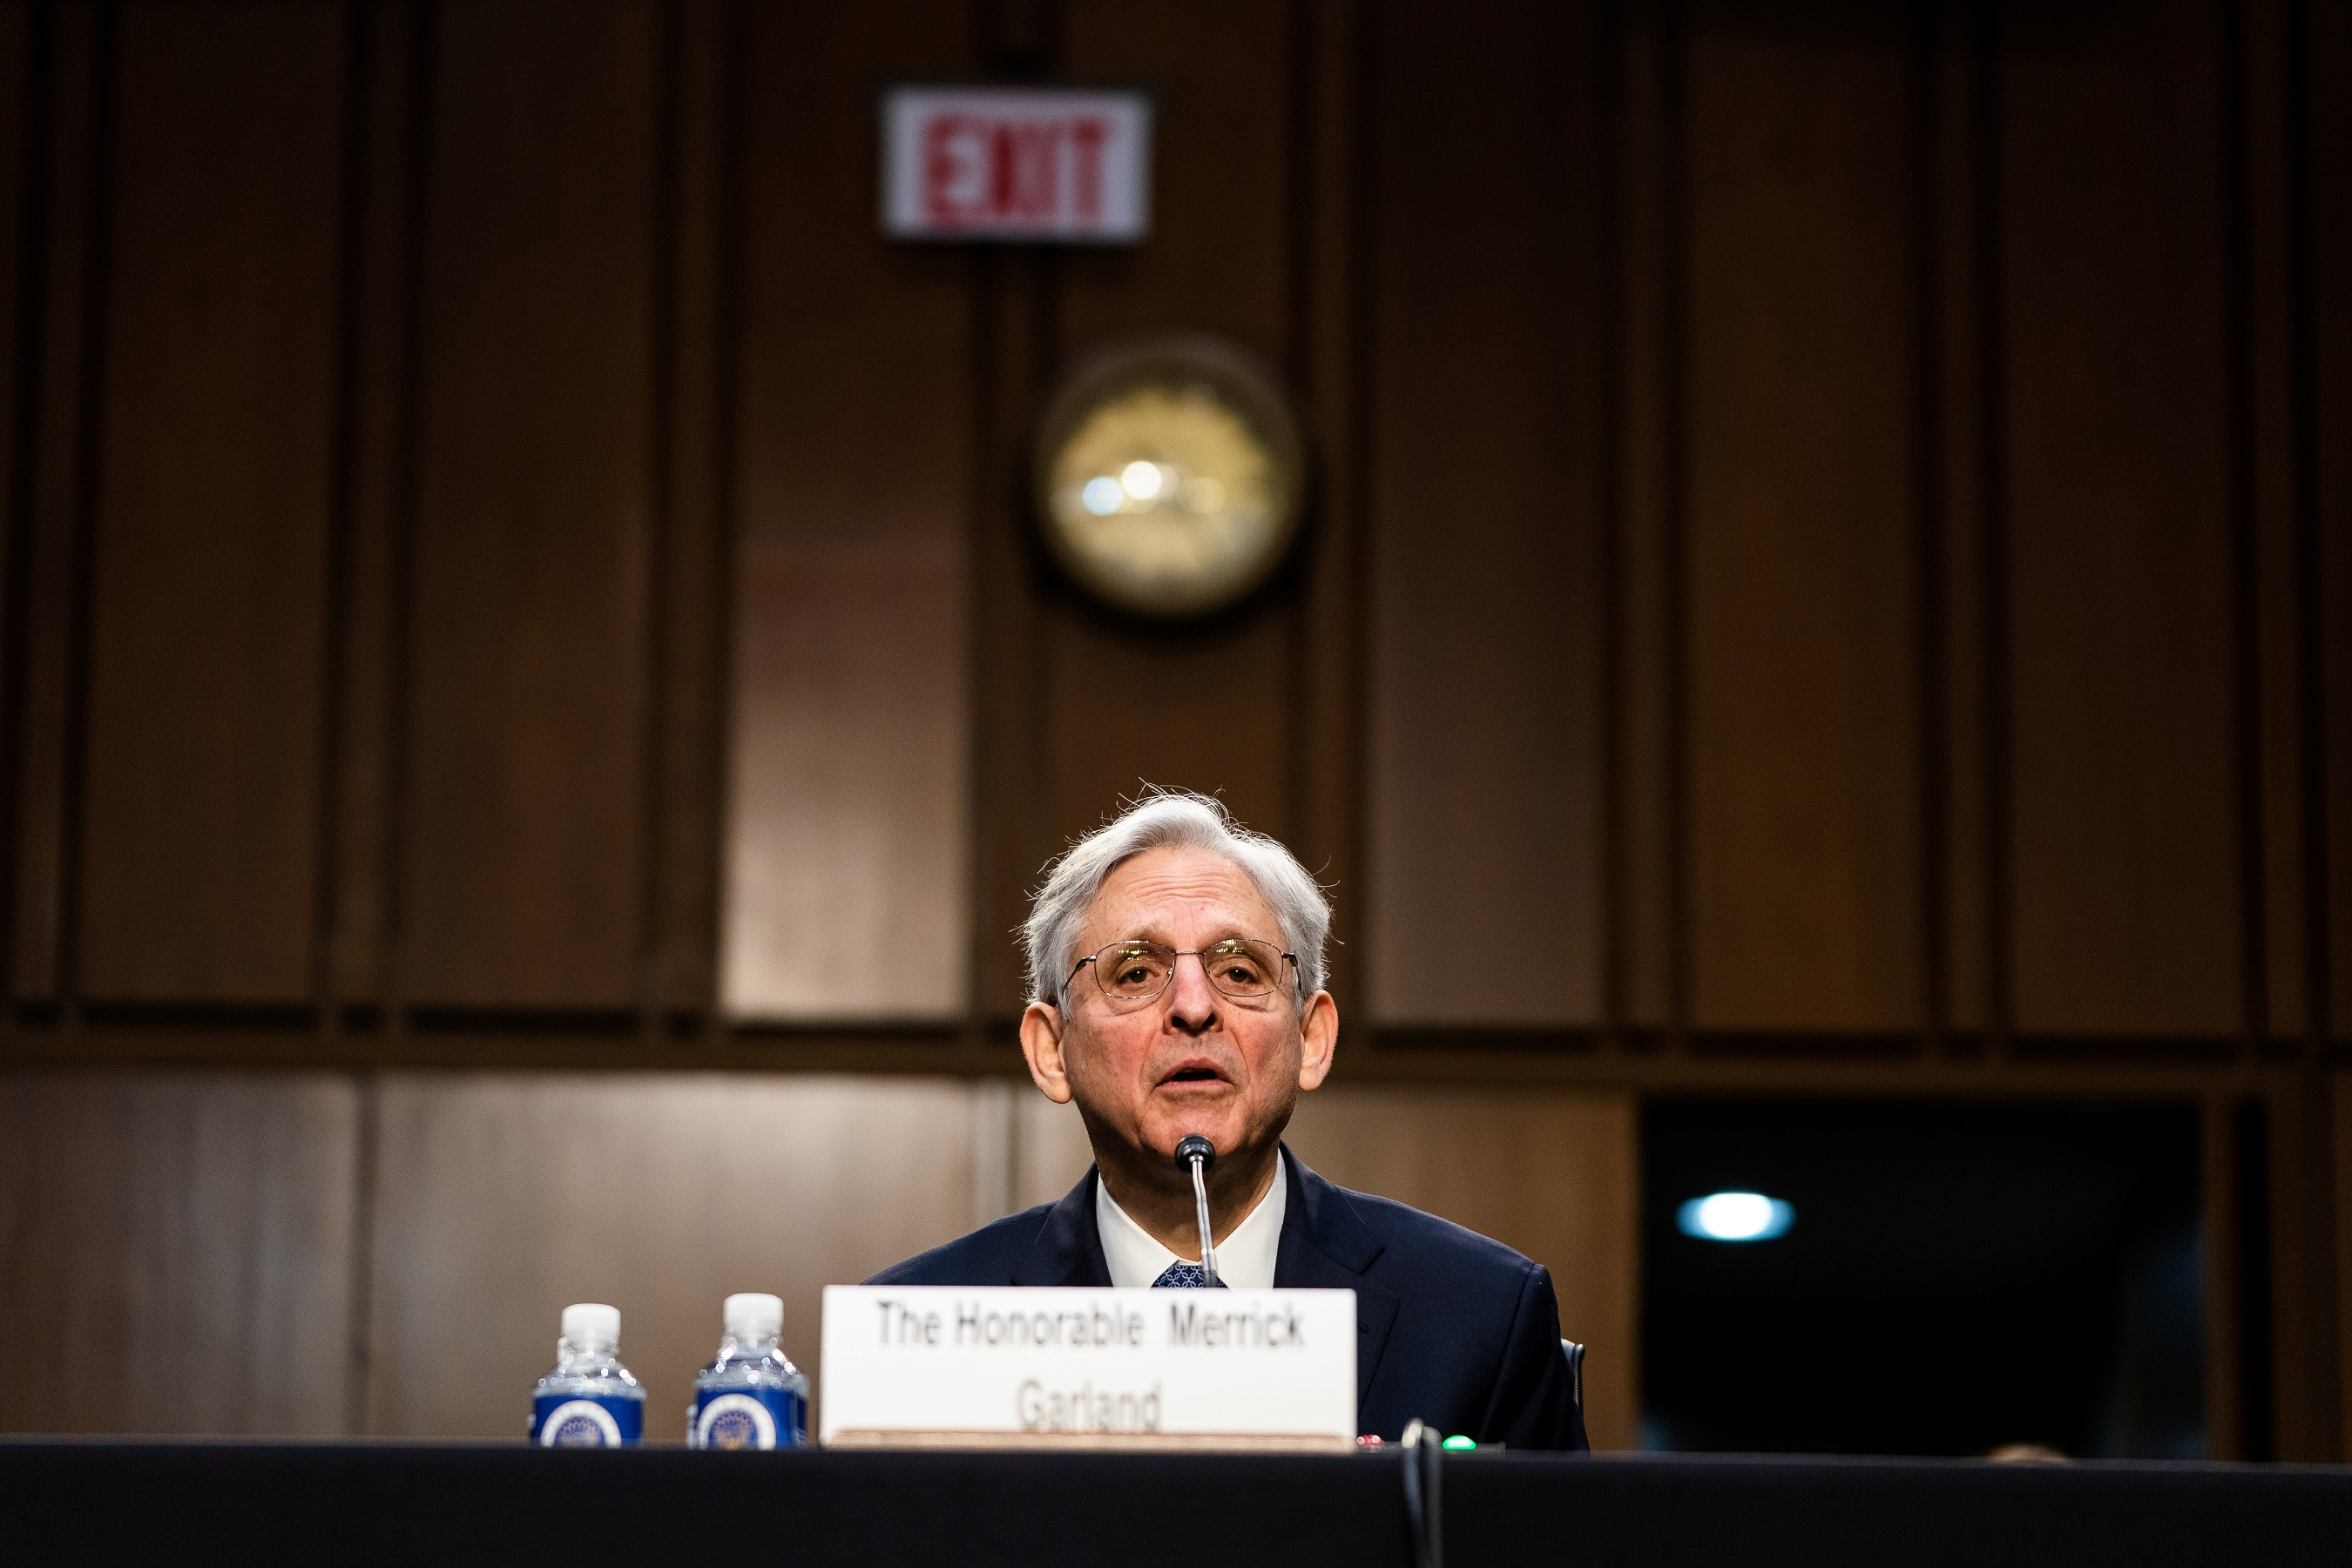 Nominee for U.S. Attorney General, Merrick Garland, during his swearing in confirmation hearing before the Senate Judiciary Committee, Washington, DC U.S., February 22, 2021.  Demetrius Freeman/Pool via REUTERS